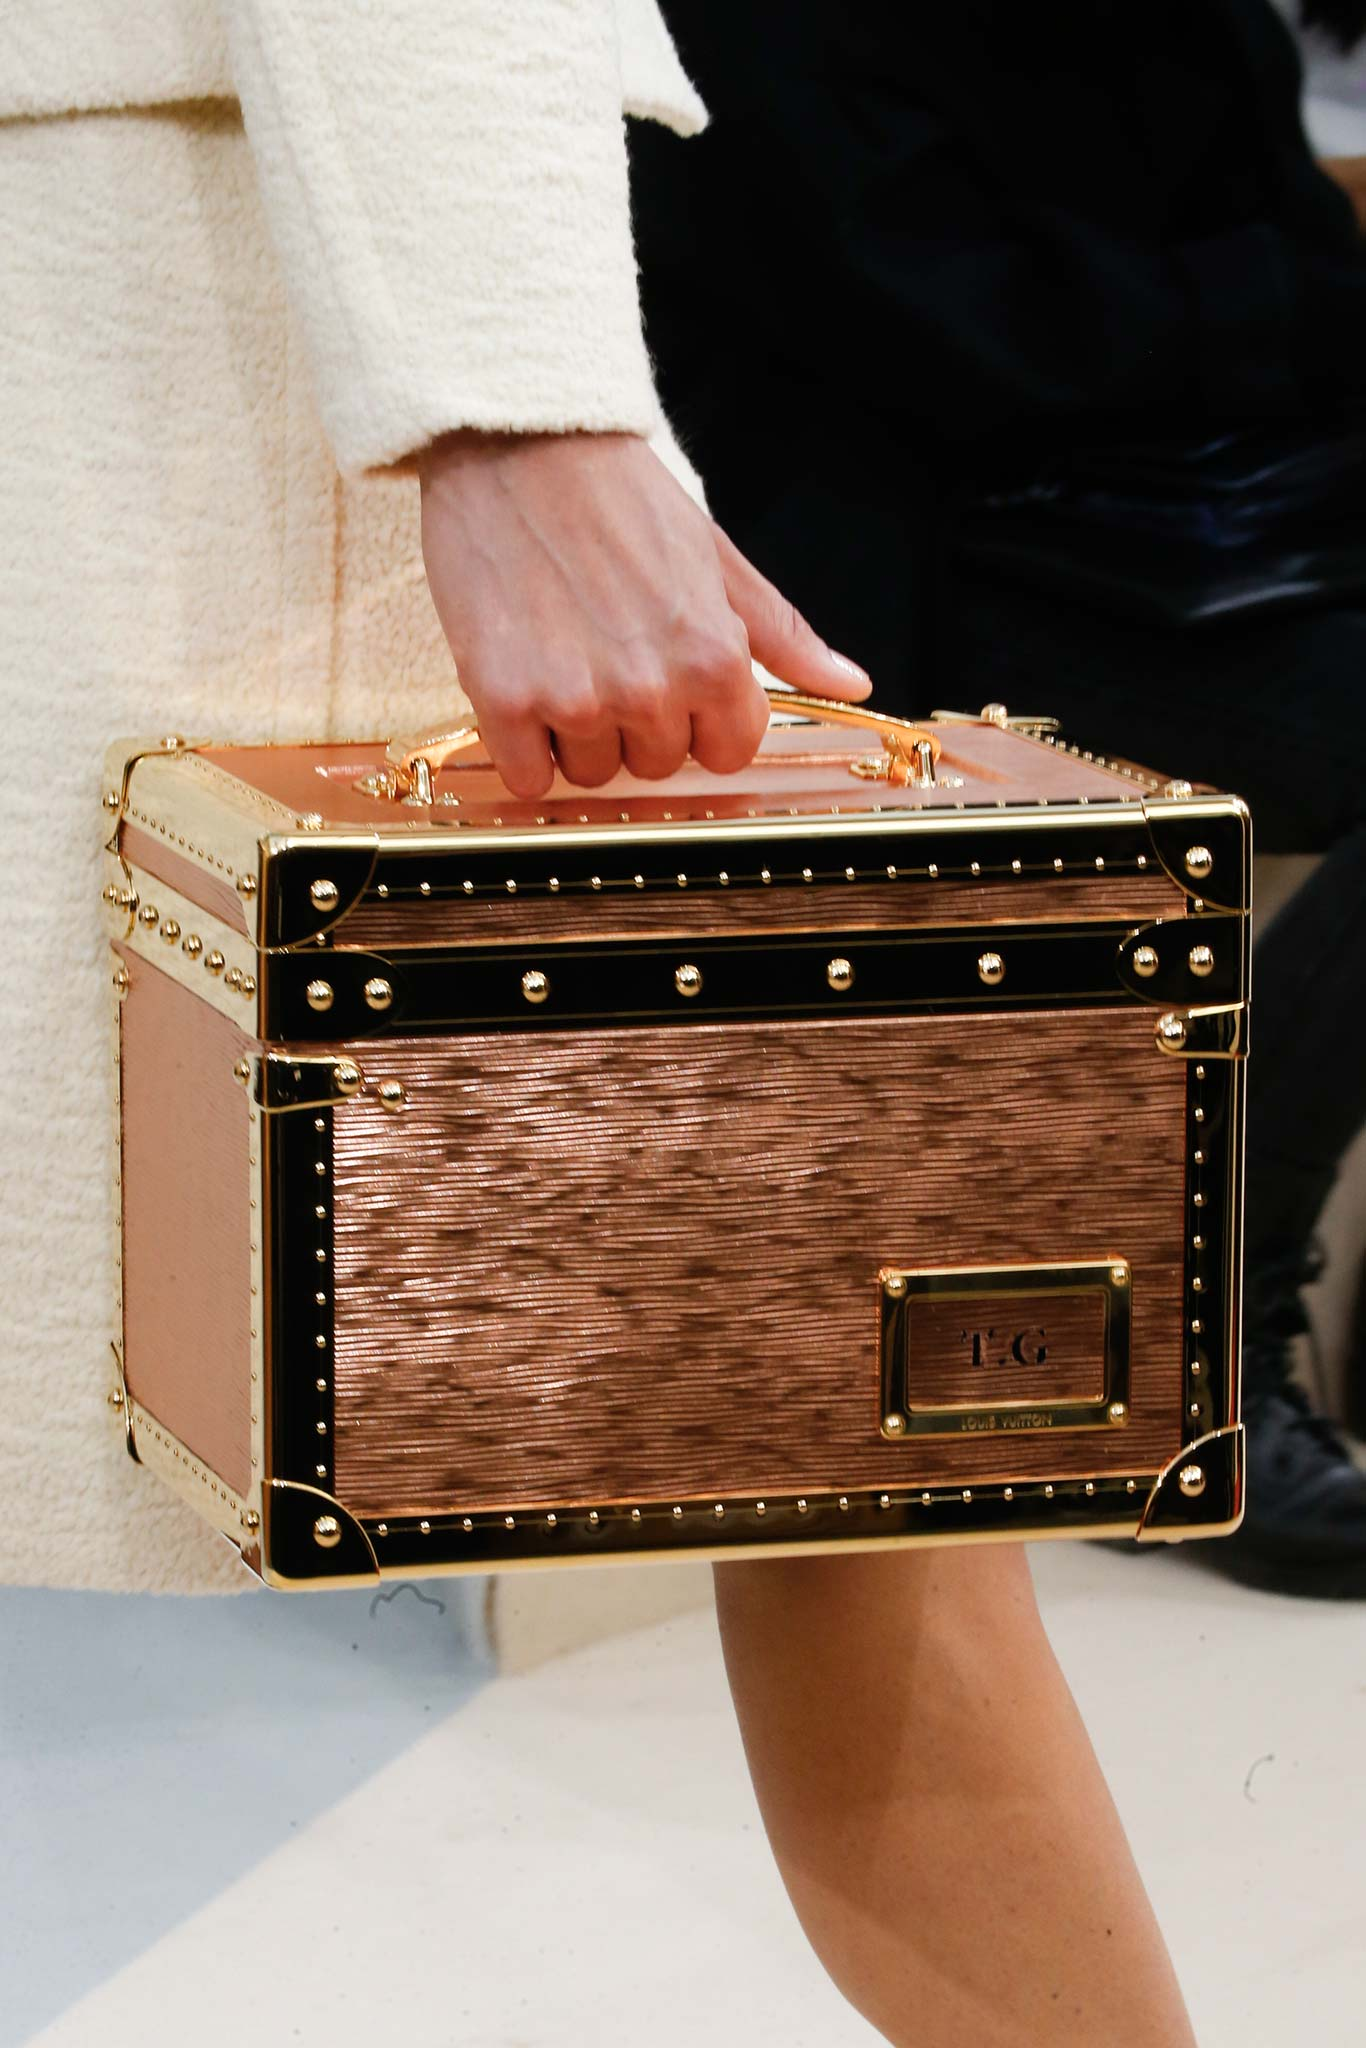 louis vuitton fall  winter 2015 runway bag collection featuring mini trunks